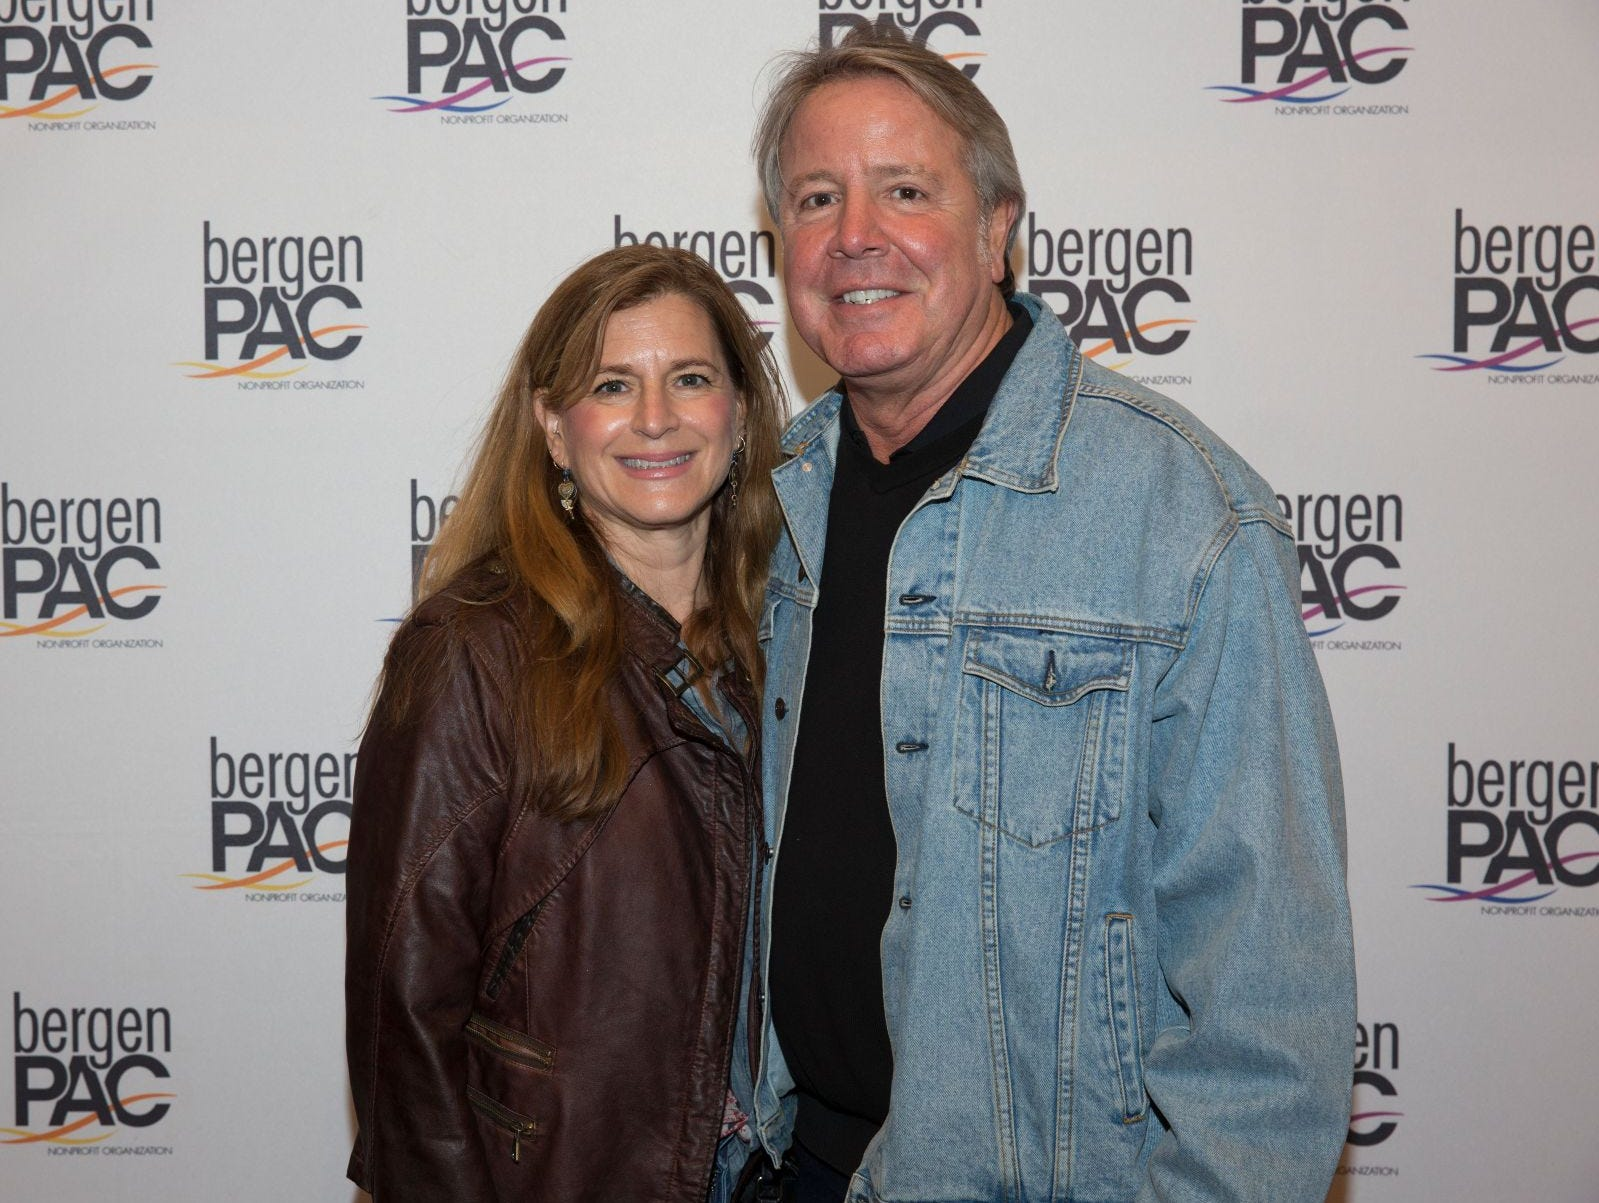 Wanoka and Steven Couri. BergenPAC held its annual fall gala featuring John Fogerty in Englewood. This year's honoree was Fernando Garip, from Wilmington Trust and M&T Bank. 11/08/2018